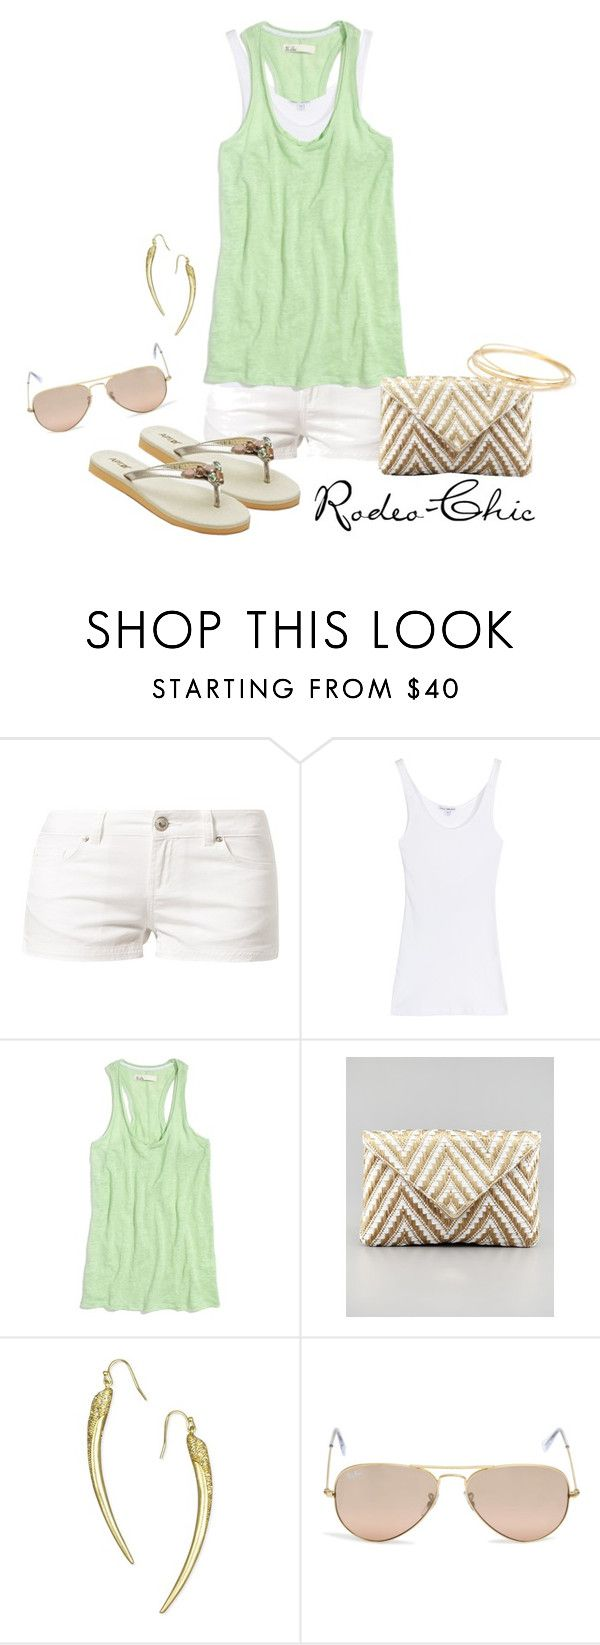 """Drive South"" by rodeo-chic ❤ liked on Polyvore featuring LTB by Little Big, James Perse, Madewell, Elaine Turner, Apt. 9, Rachel Rachel Roy and Ray-Ban"